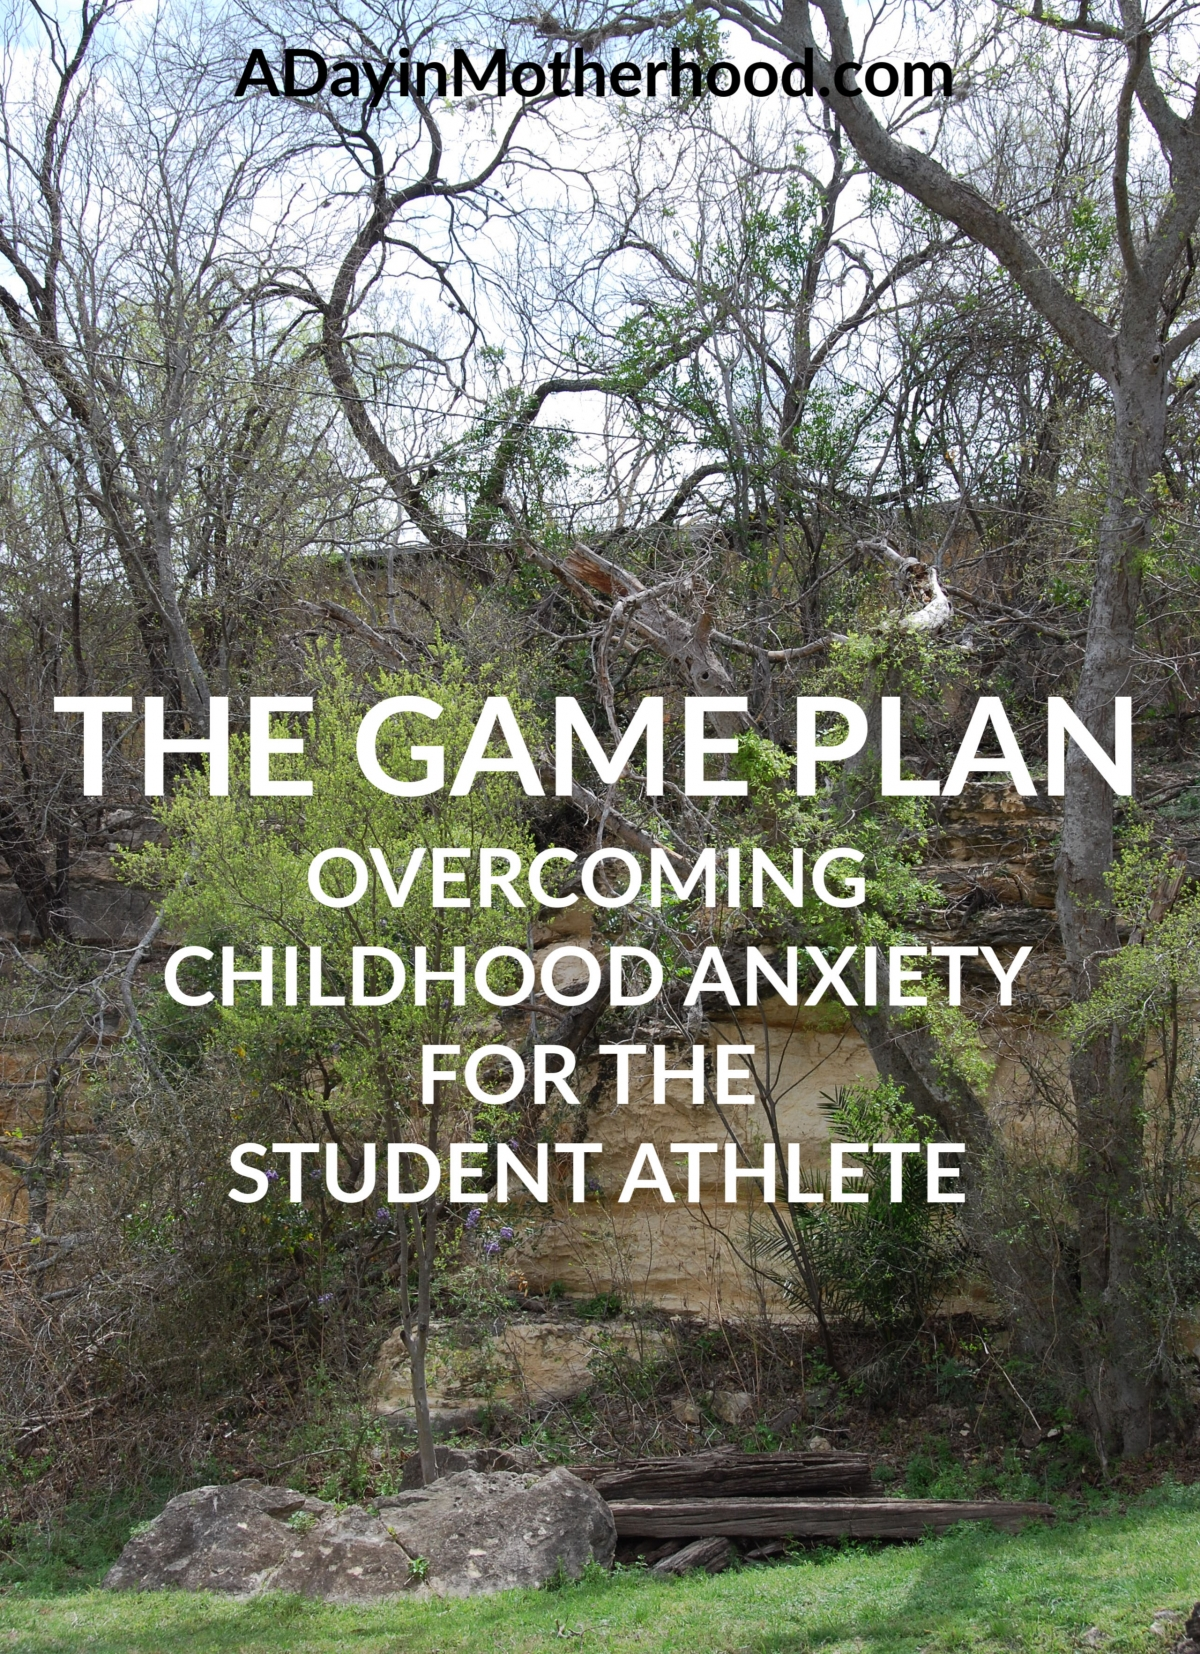 Having a game plan can help reduce your student athletes stress and anxiety